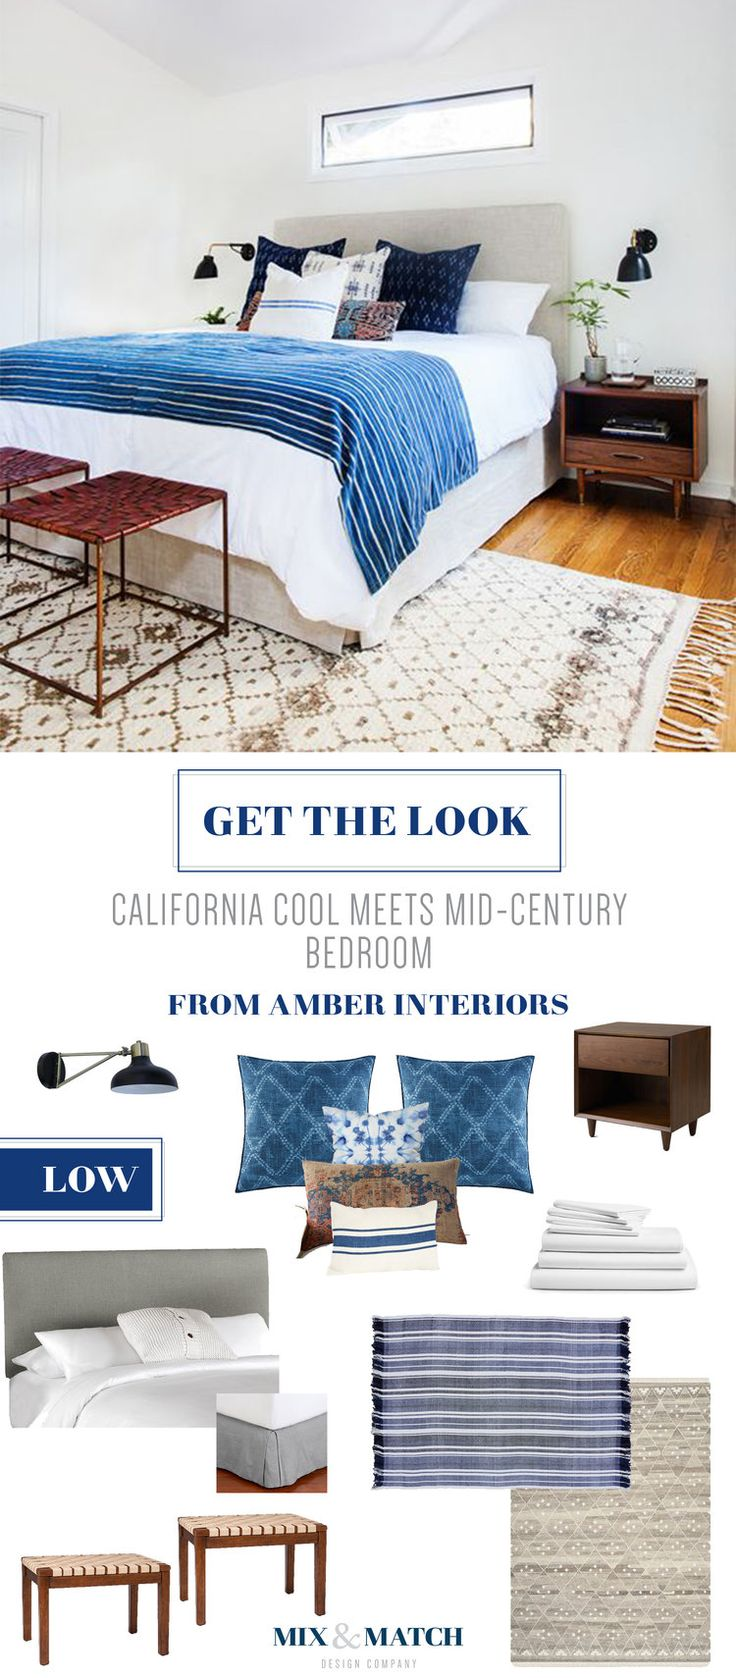 Get the look of this California cool meets mid-century bedroom from Amber Interiors. Indigo, shibori and neutrals come together to create a cozy space. Shop the pieces on the Mix & Match blog!